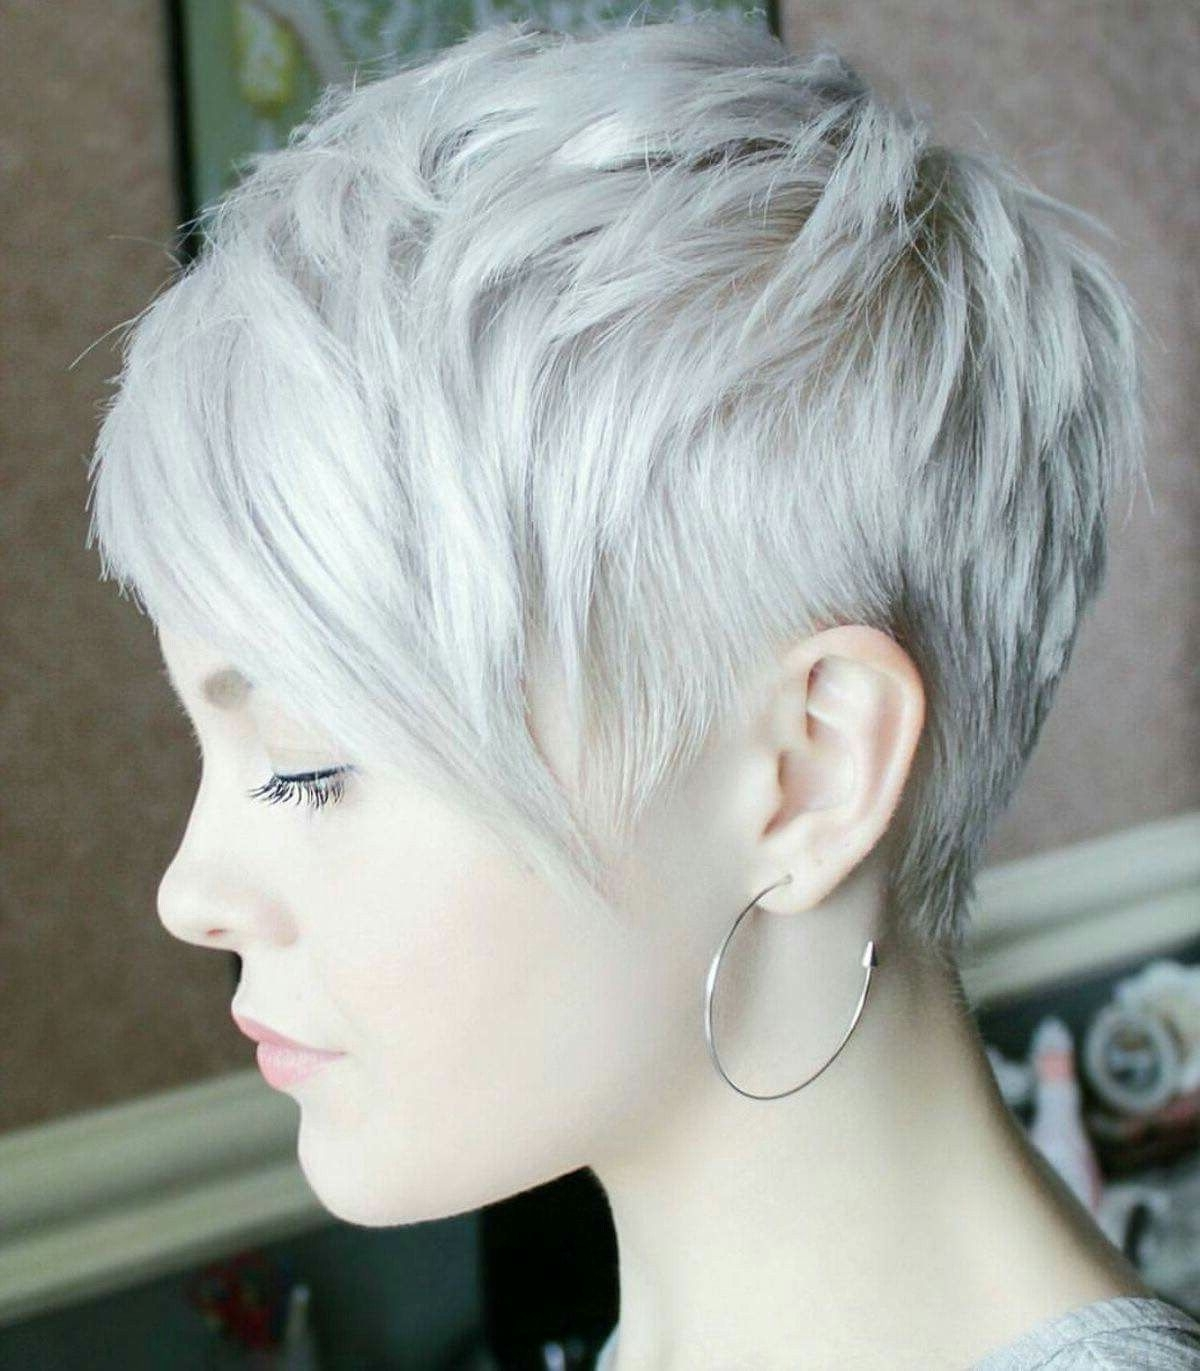 60 Awesome Pixie Haircut For Thick Hair 39 | Pixie Haircut Inside Most Recent Pixie Hairstyles For Thick Straight Hair (View 11 of 15)